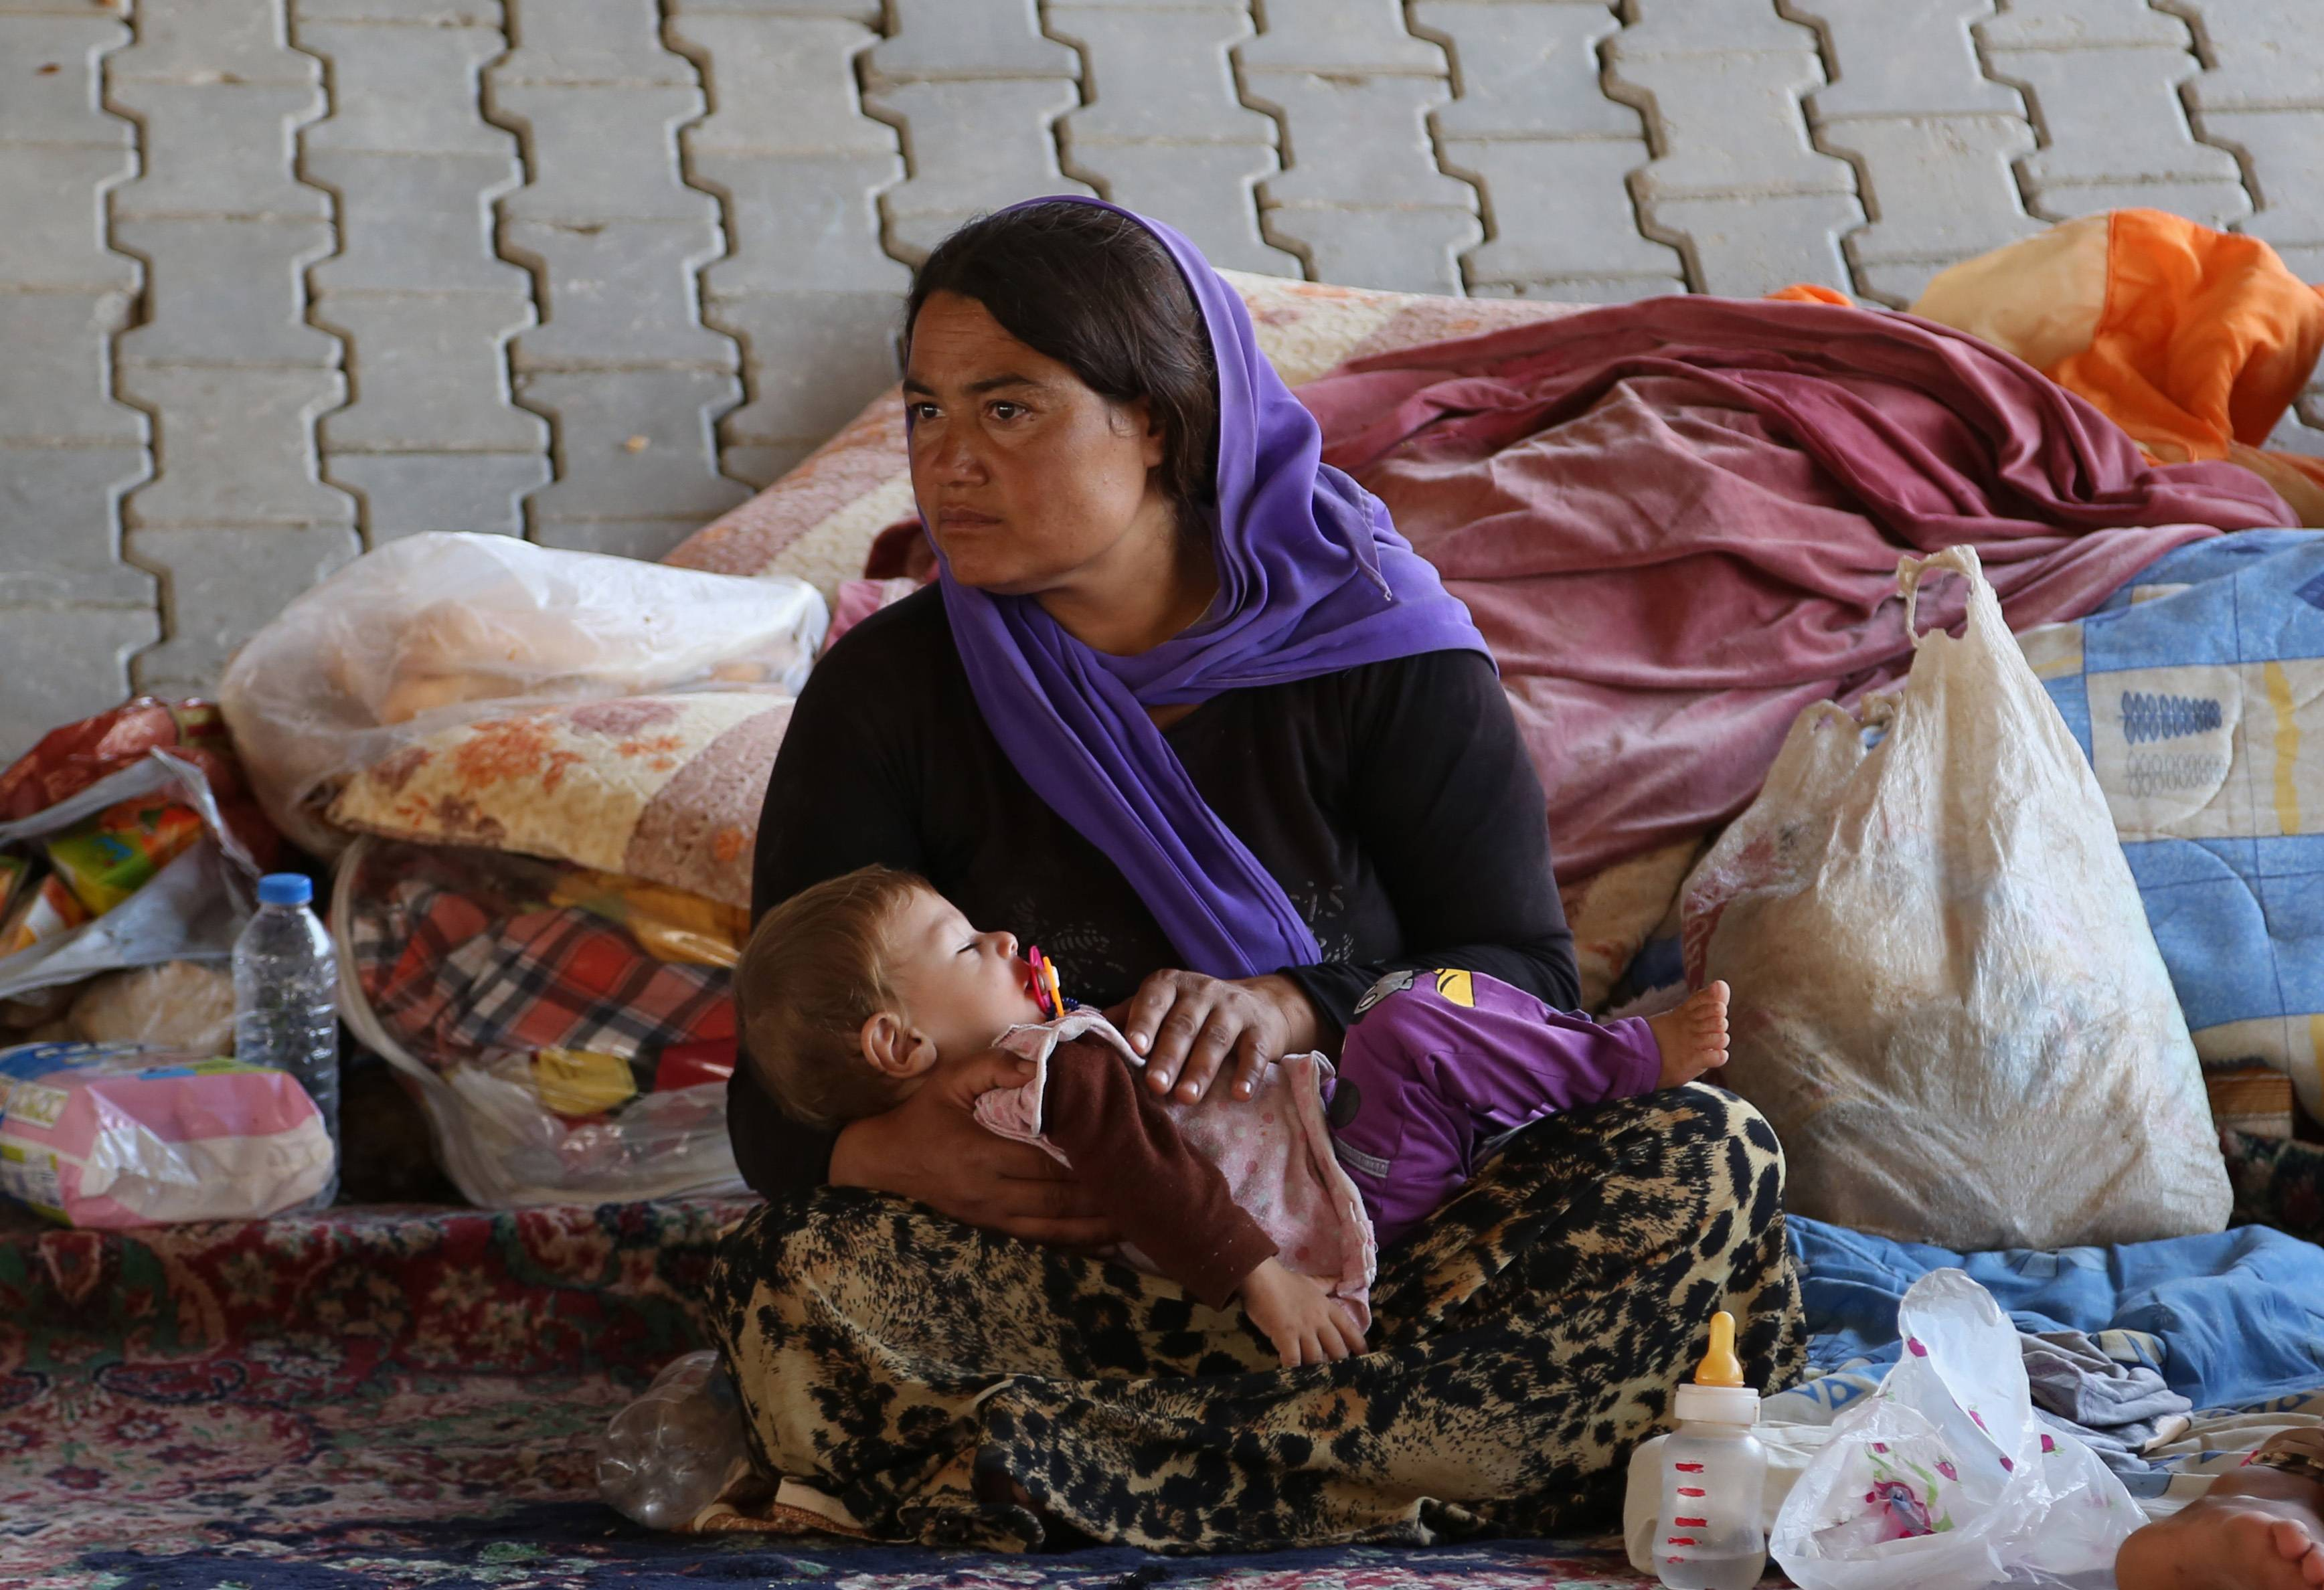 An Iraqi woman and her daughter from the Yazidi community settle under a bridge in Dahuk, 260 miles (430 kilometers) northwest of Baghdad, Iraq, Thursday, Aug. 14, 2014.